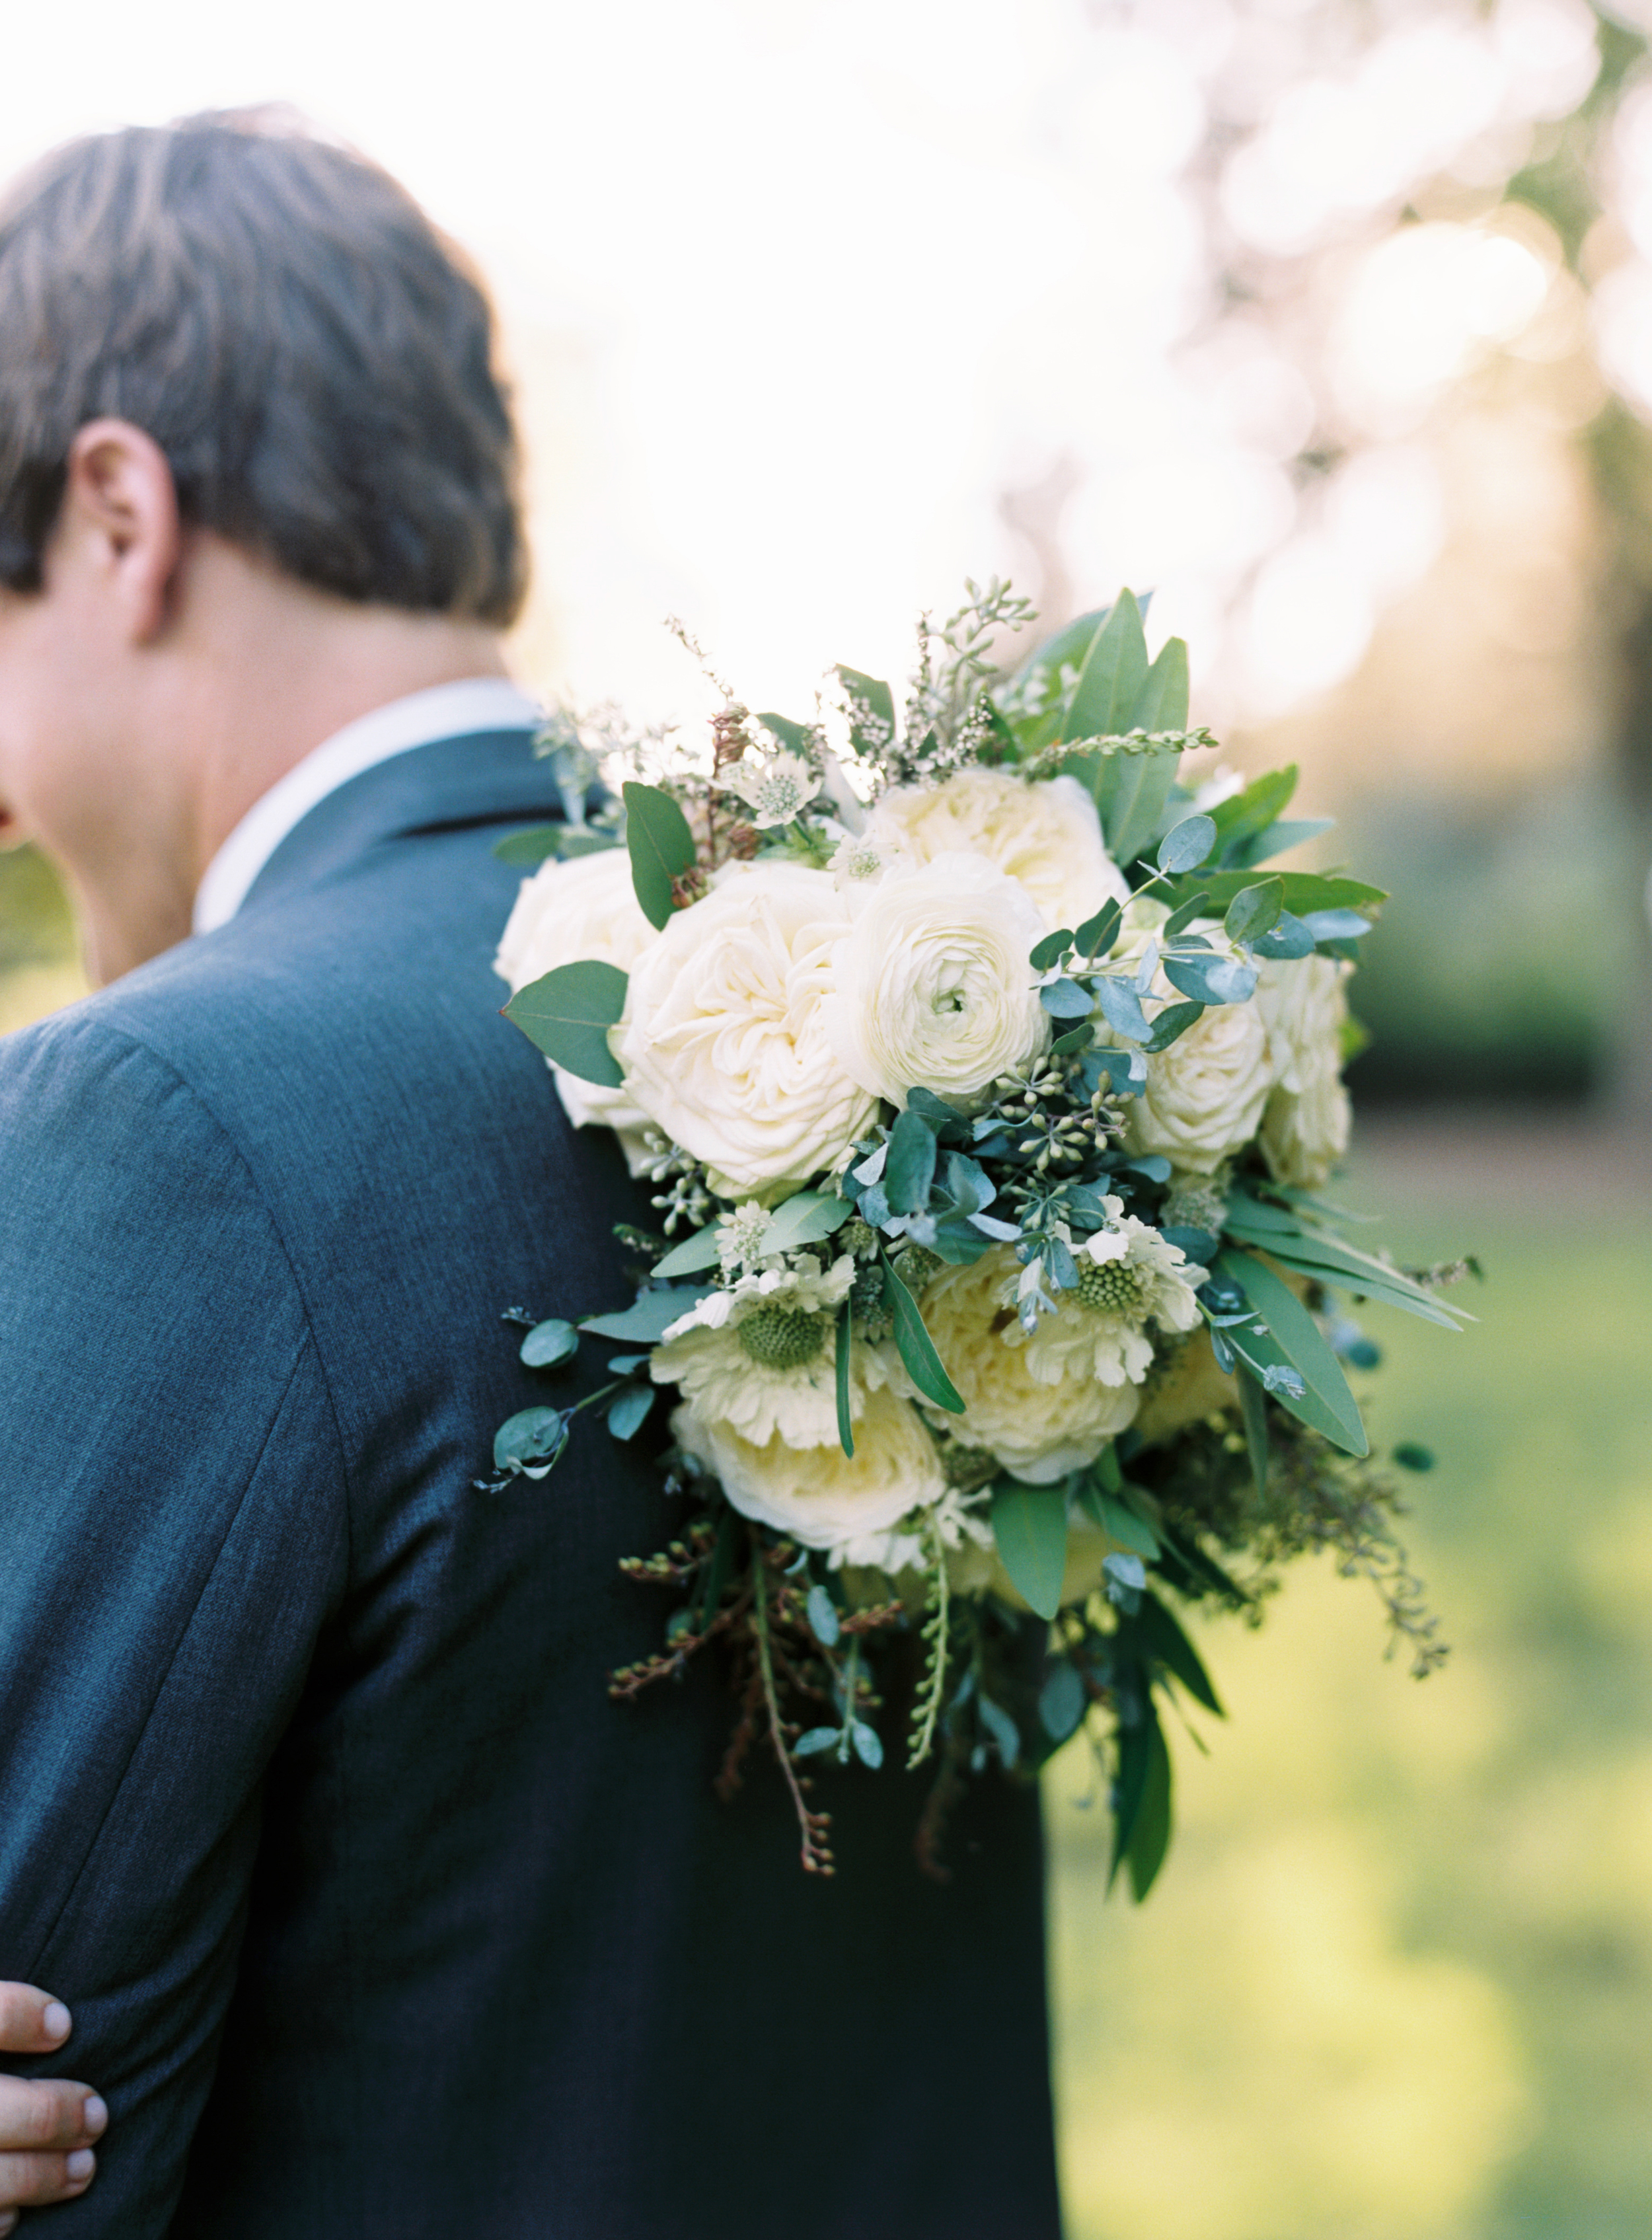 Natural light // All white and greenery bride's bouquet